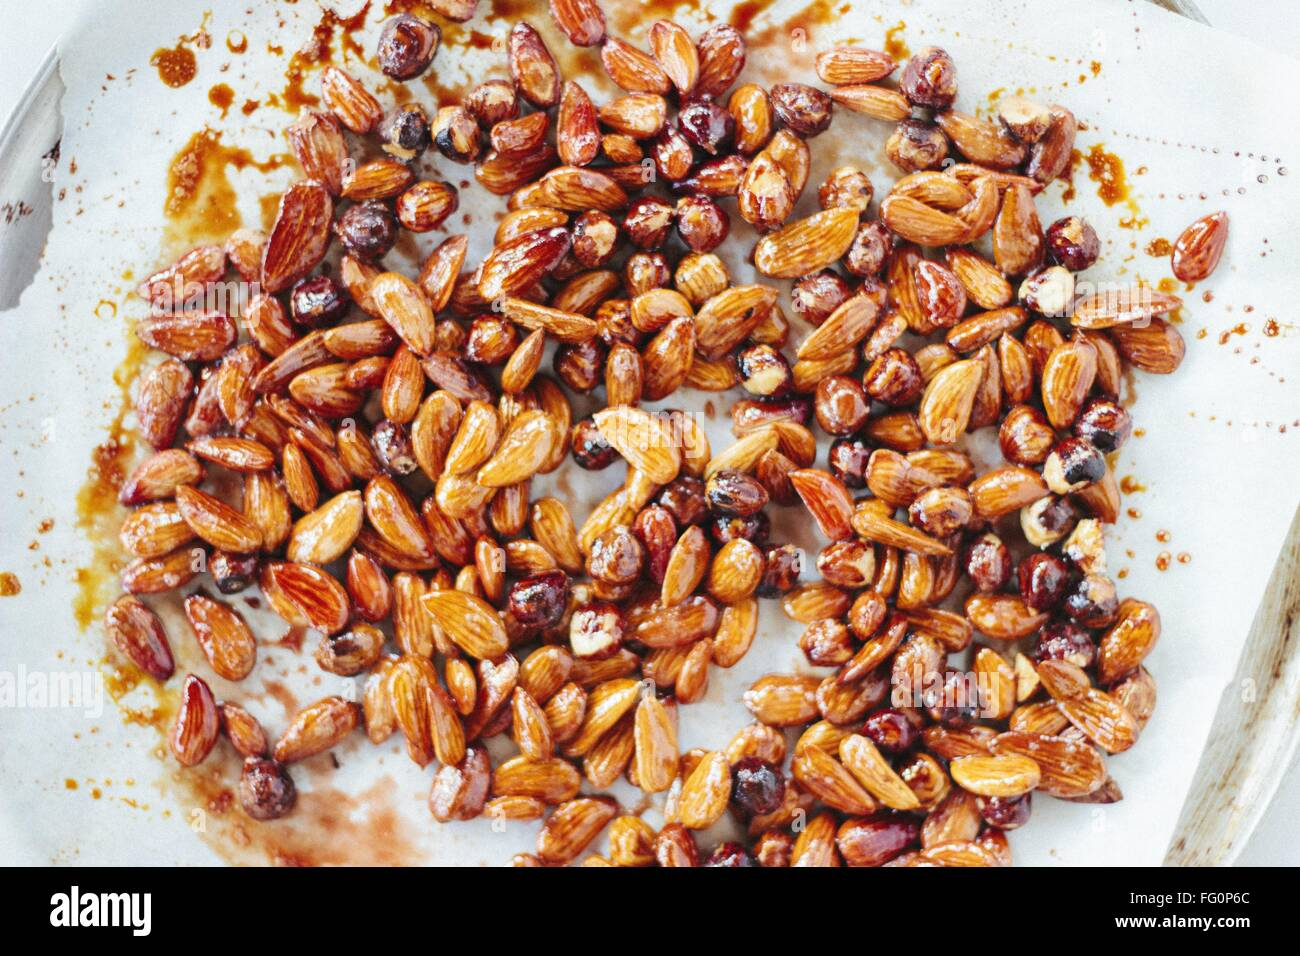 Almonds With Syrup On Baking Sheet - Stock Image